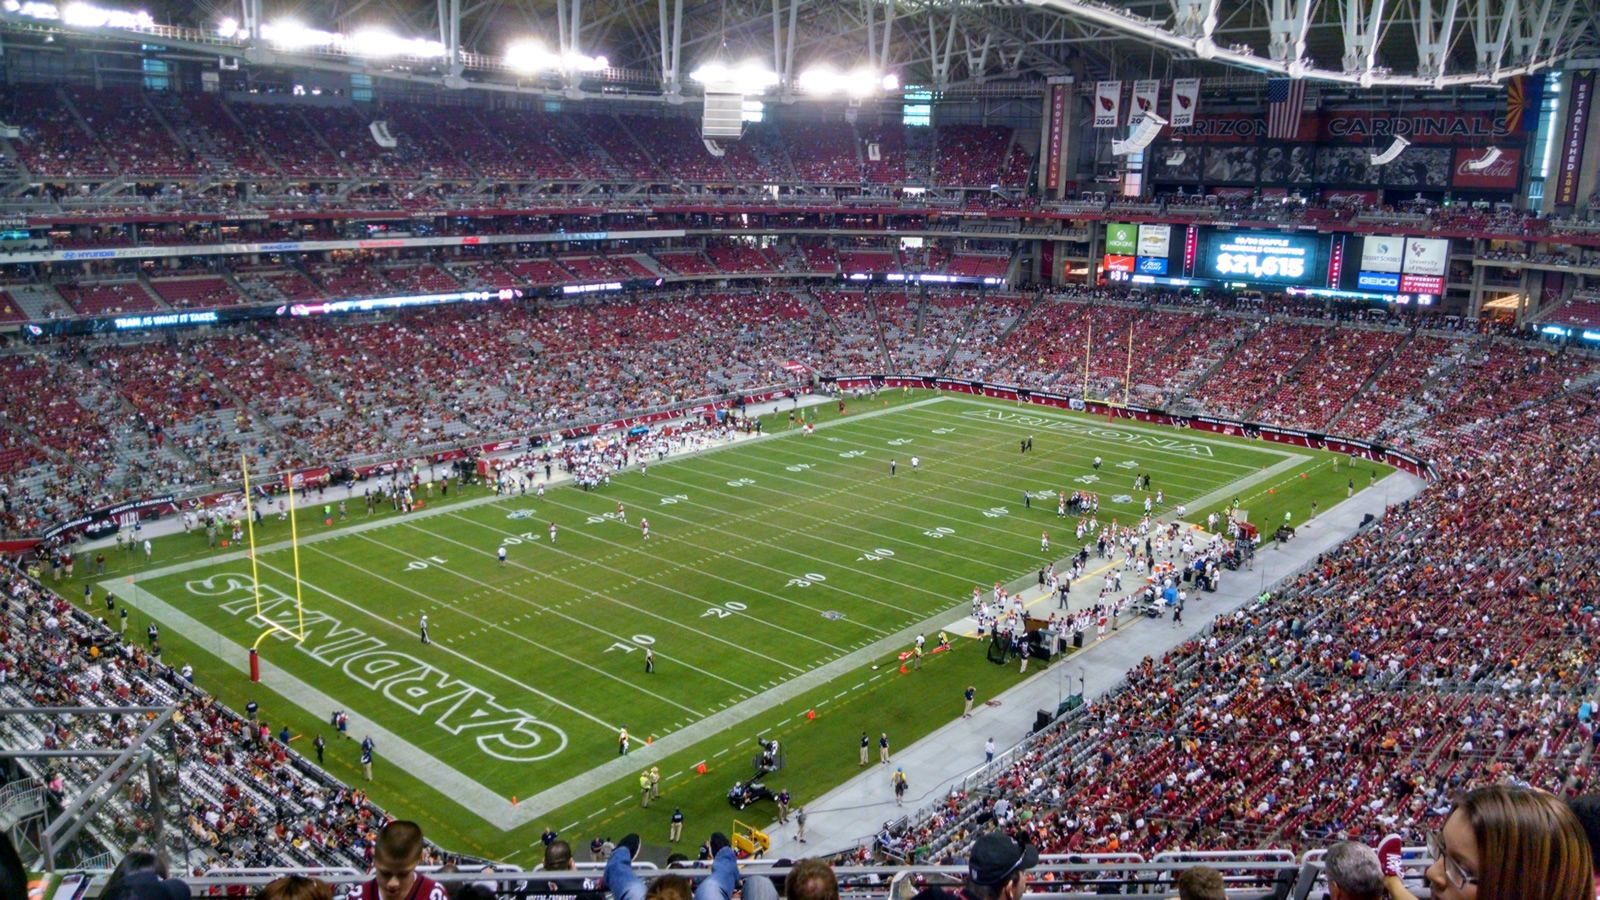 Arizona Cardinals Seat View for University of Phoenix Stadium Section 452, Row 6, Seat 18